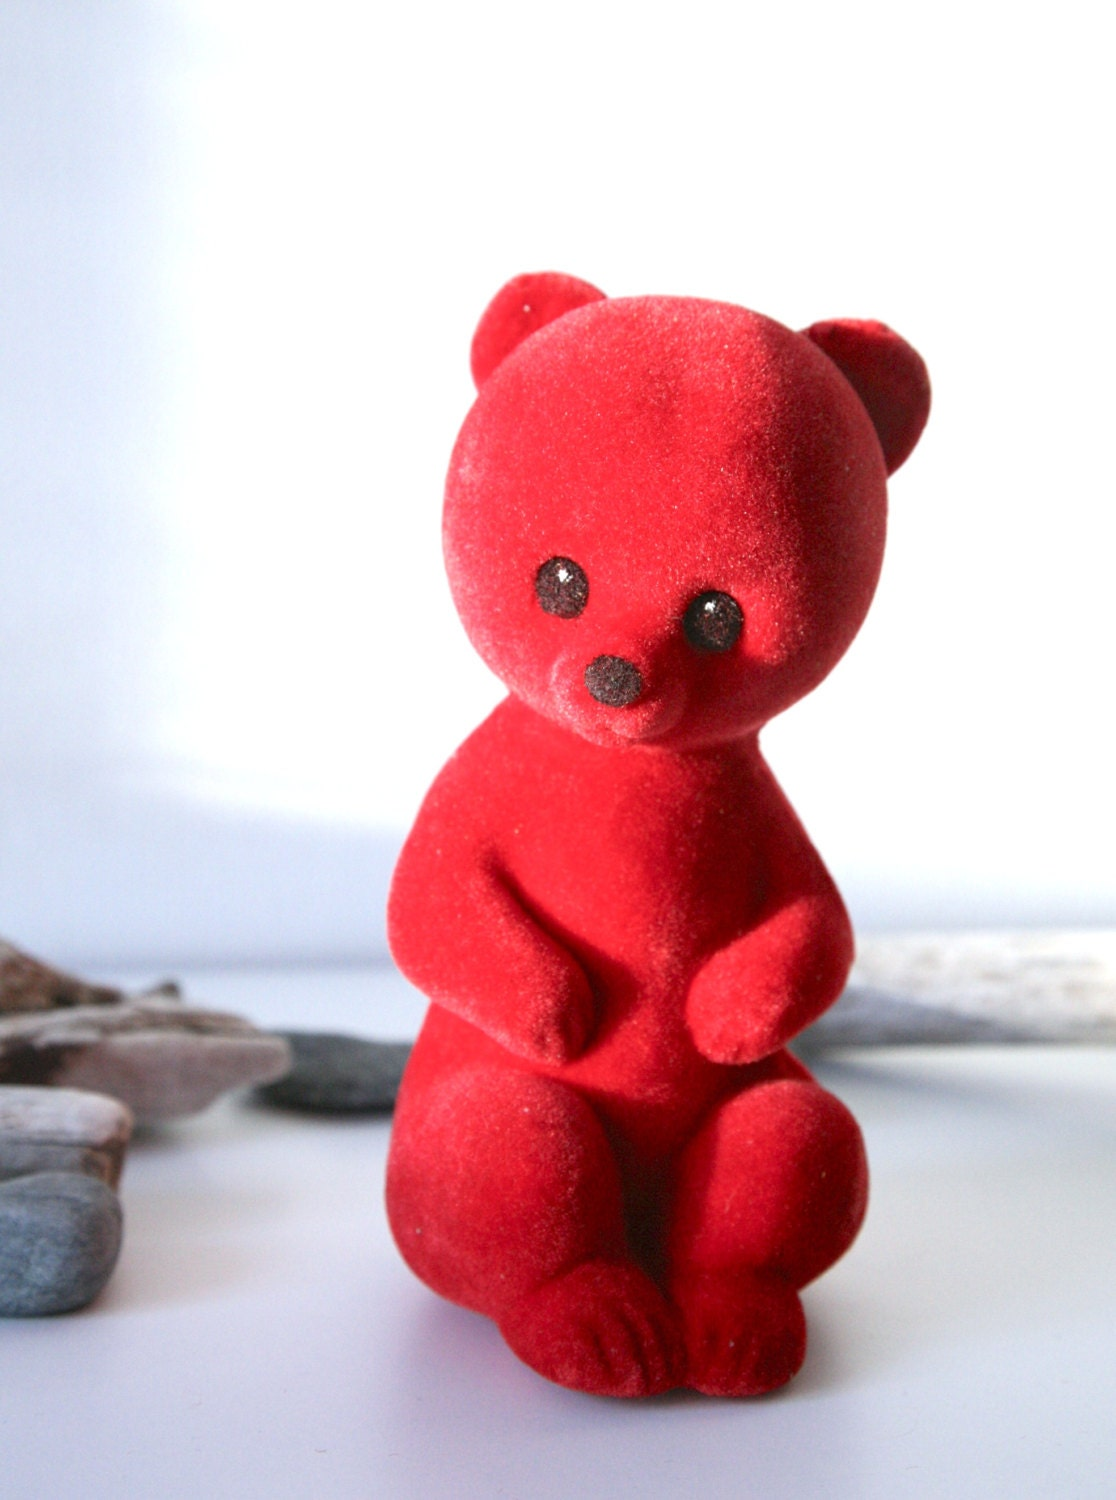 Vintage Flocked Toy Red Russian Bear Misha 1970s - TwoRedSuitcases